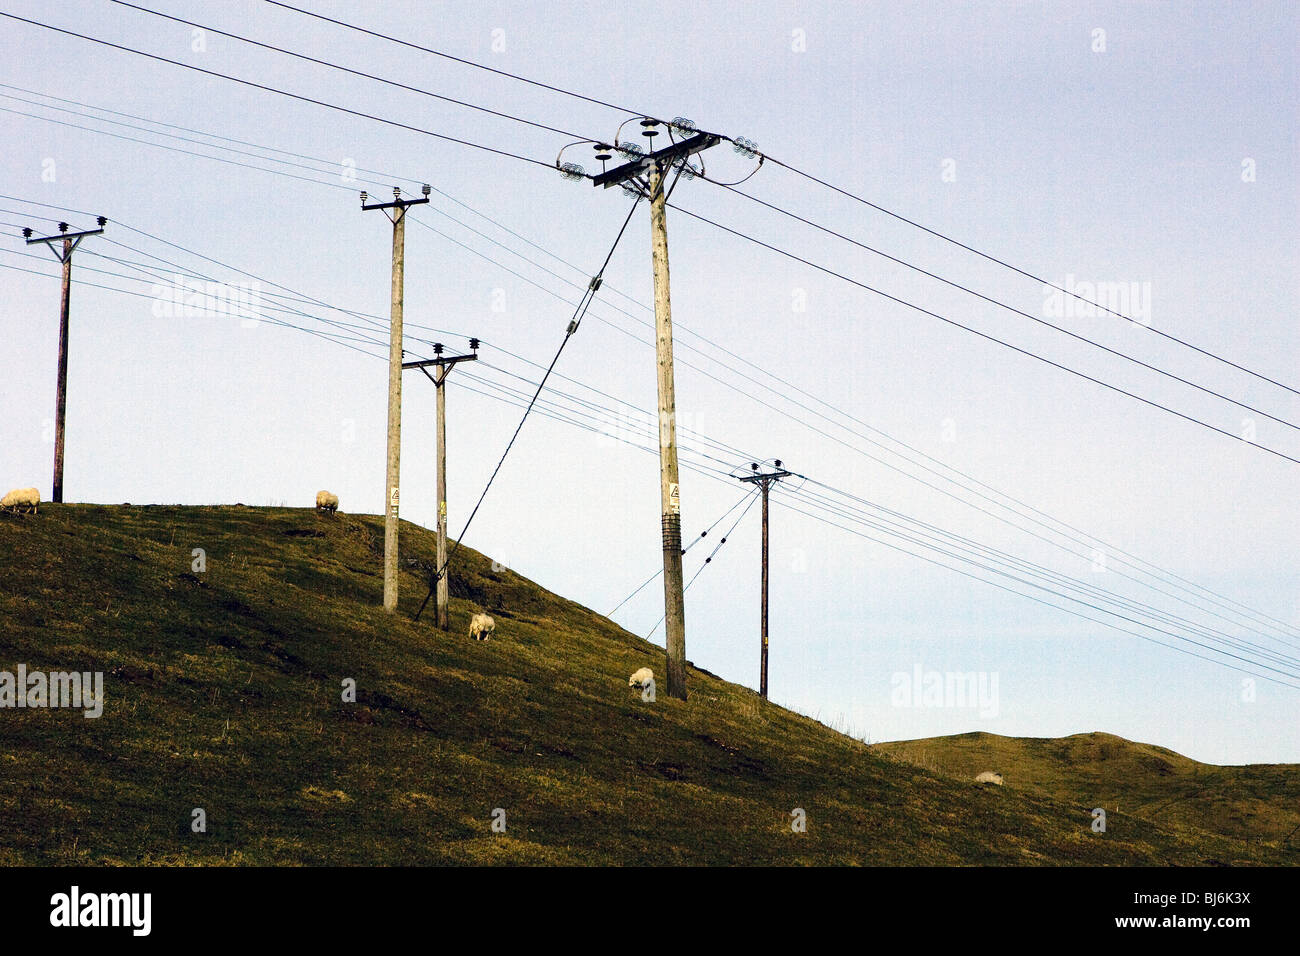 Powerlines and sheep in Wales. - Stock Image